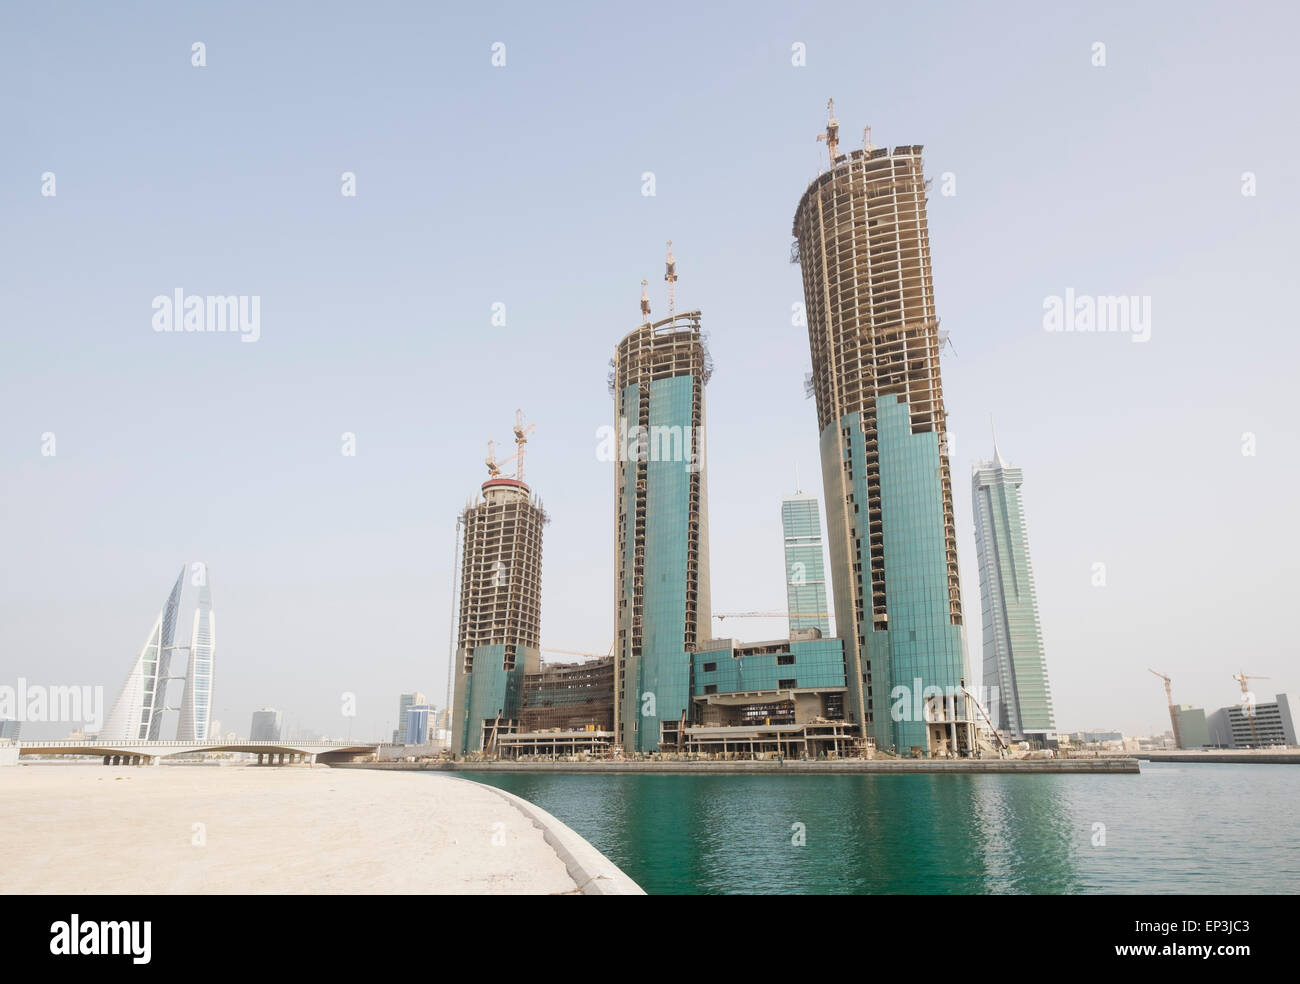 View of new office towers under construction at Bahrain Financial